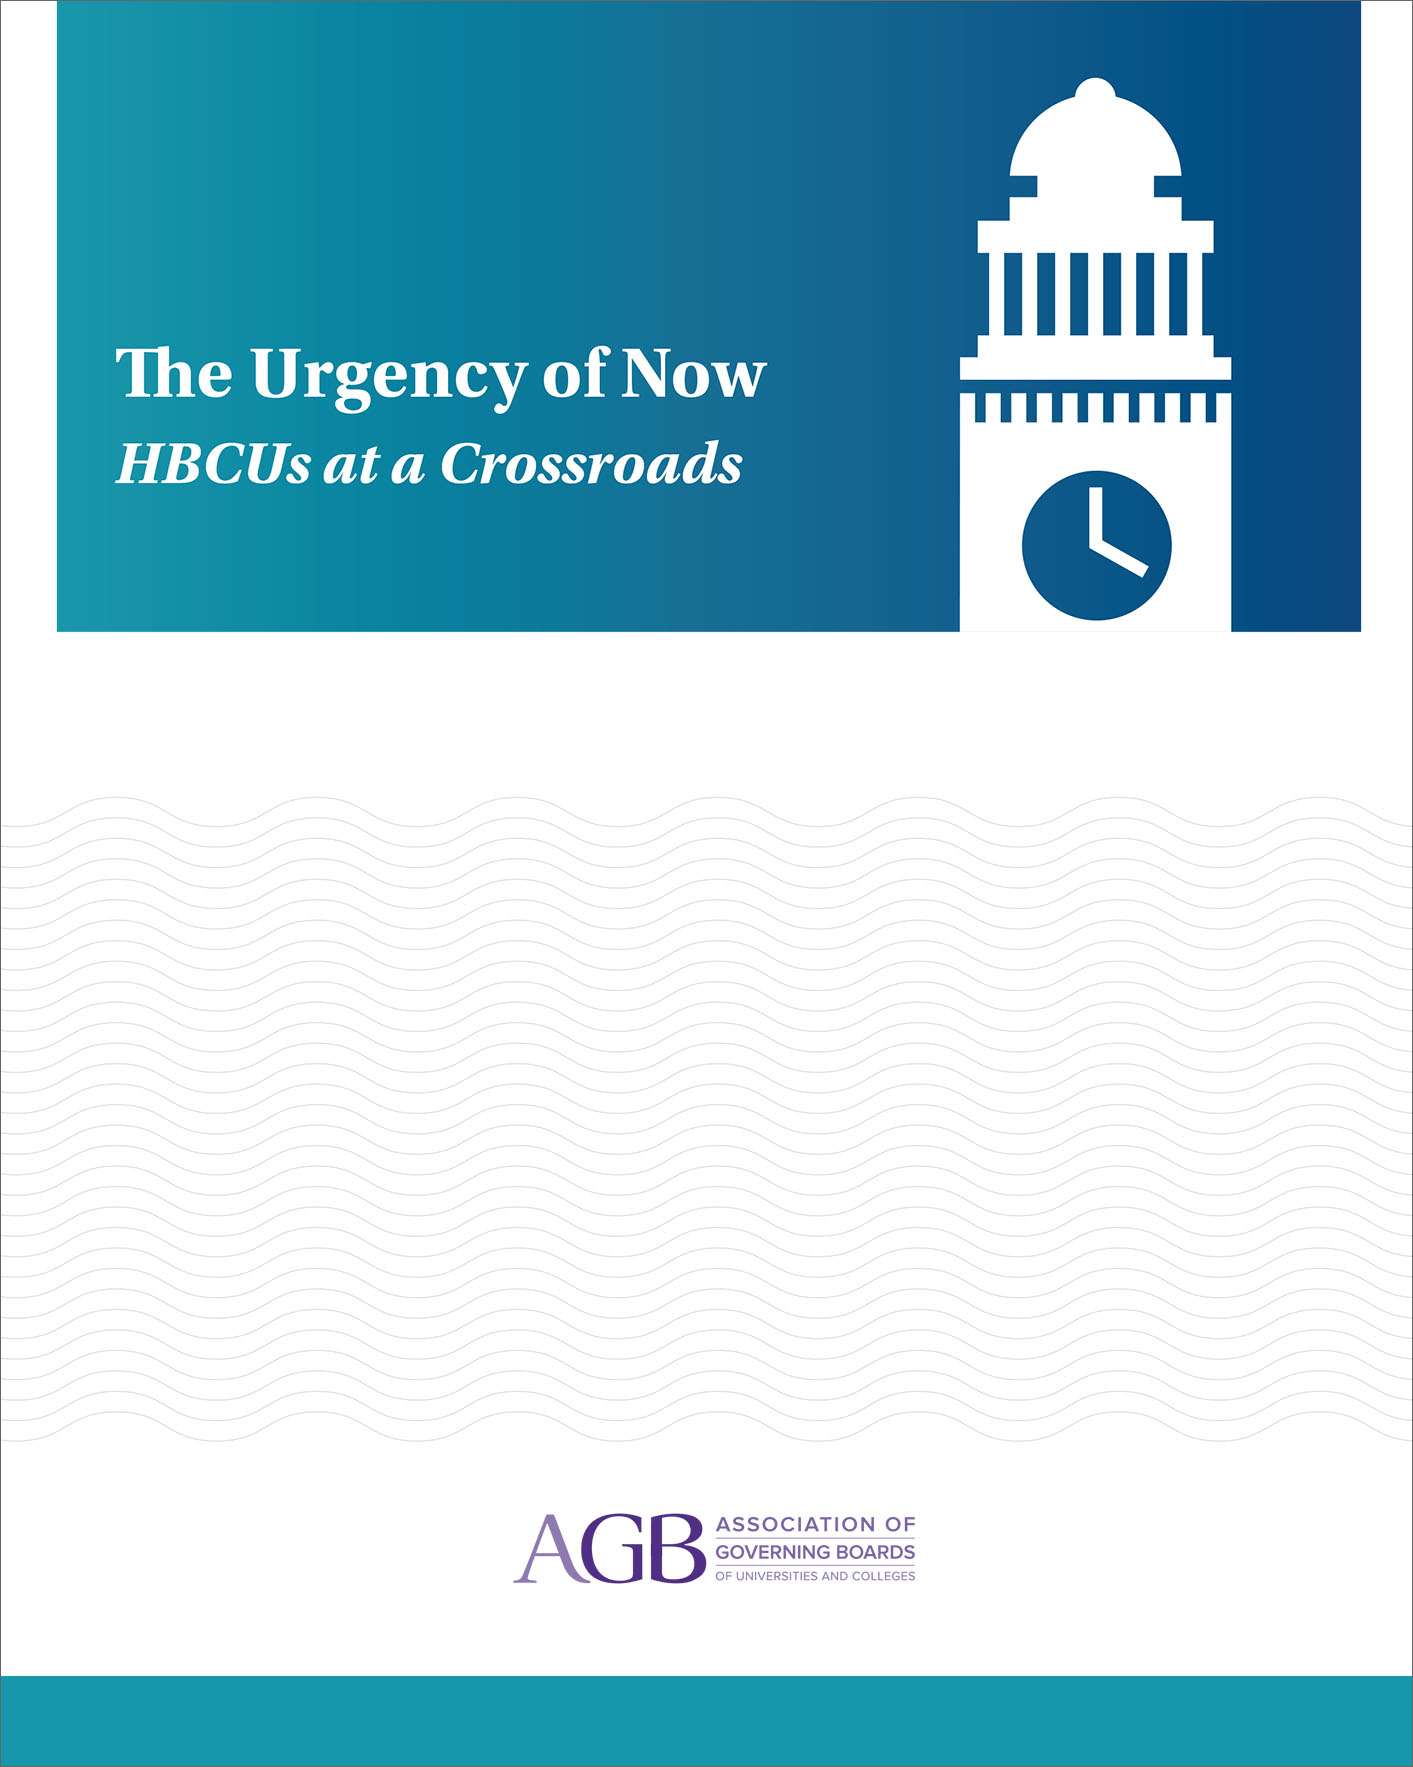 The Urgency of Now HBCUs at a Crossroads